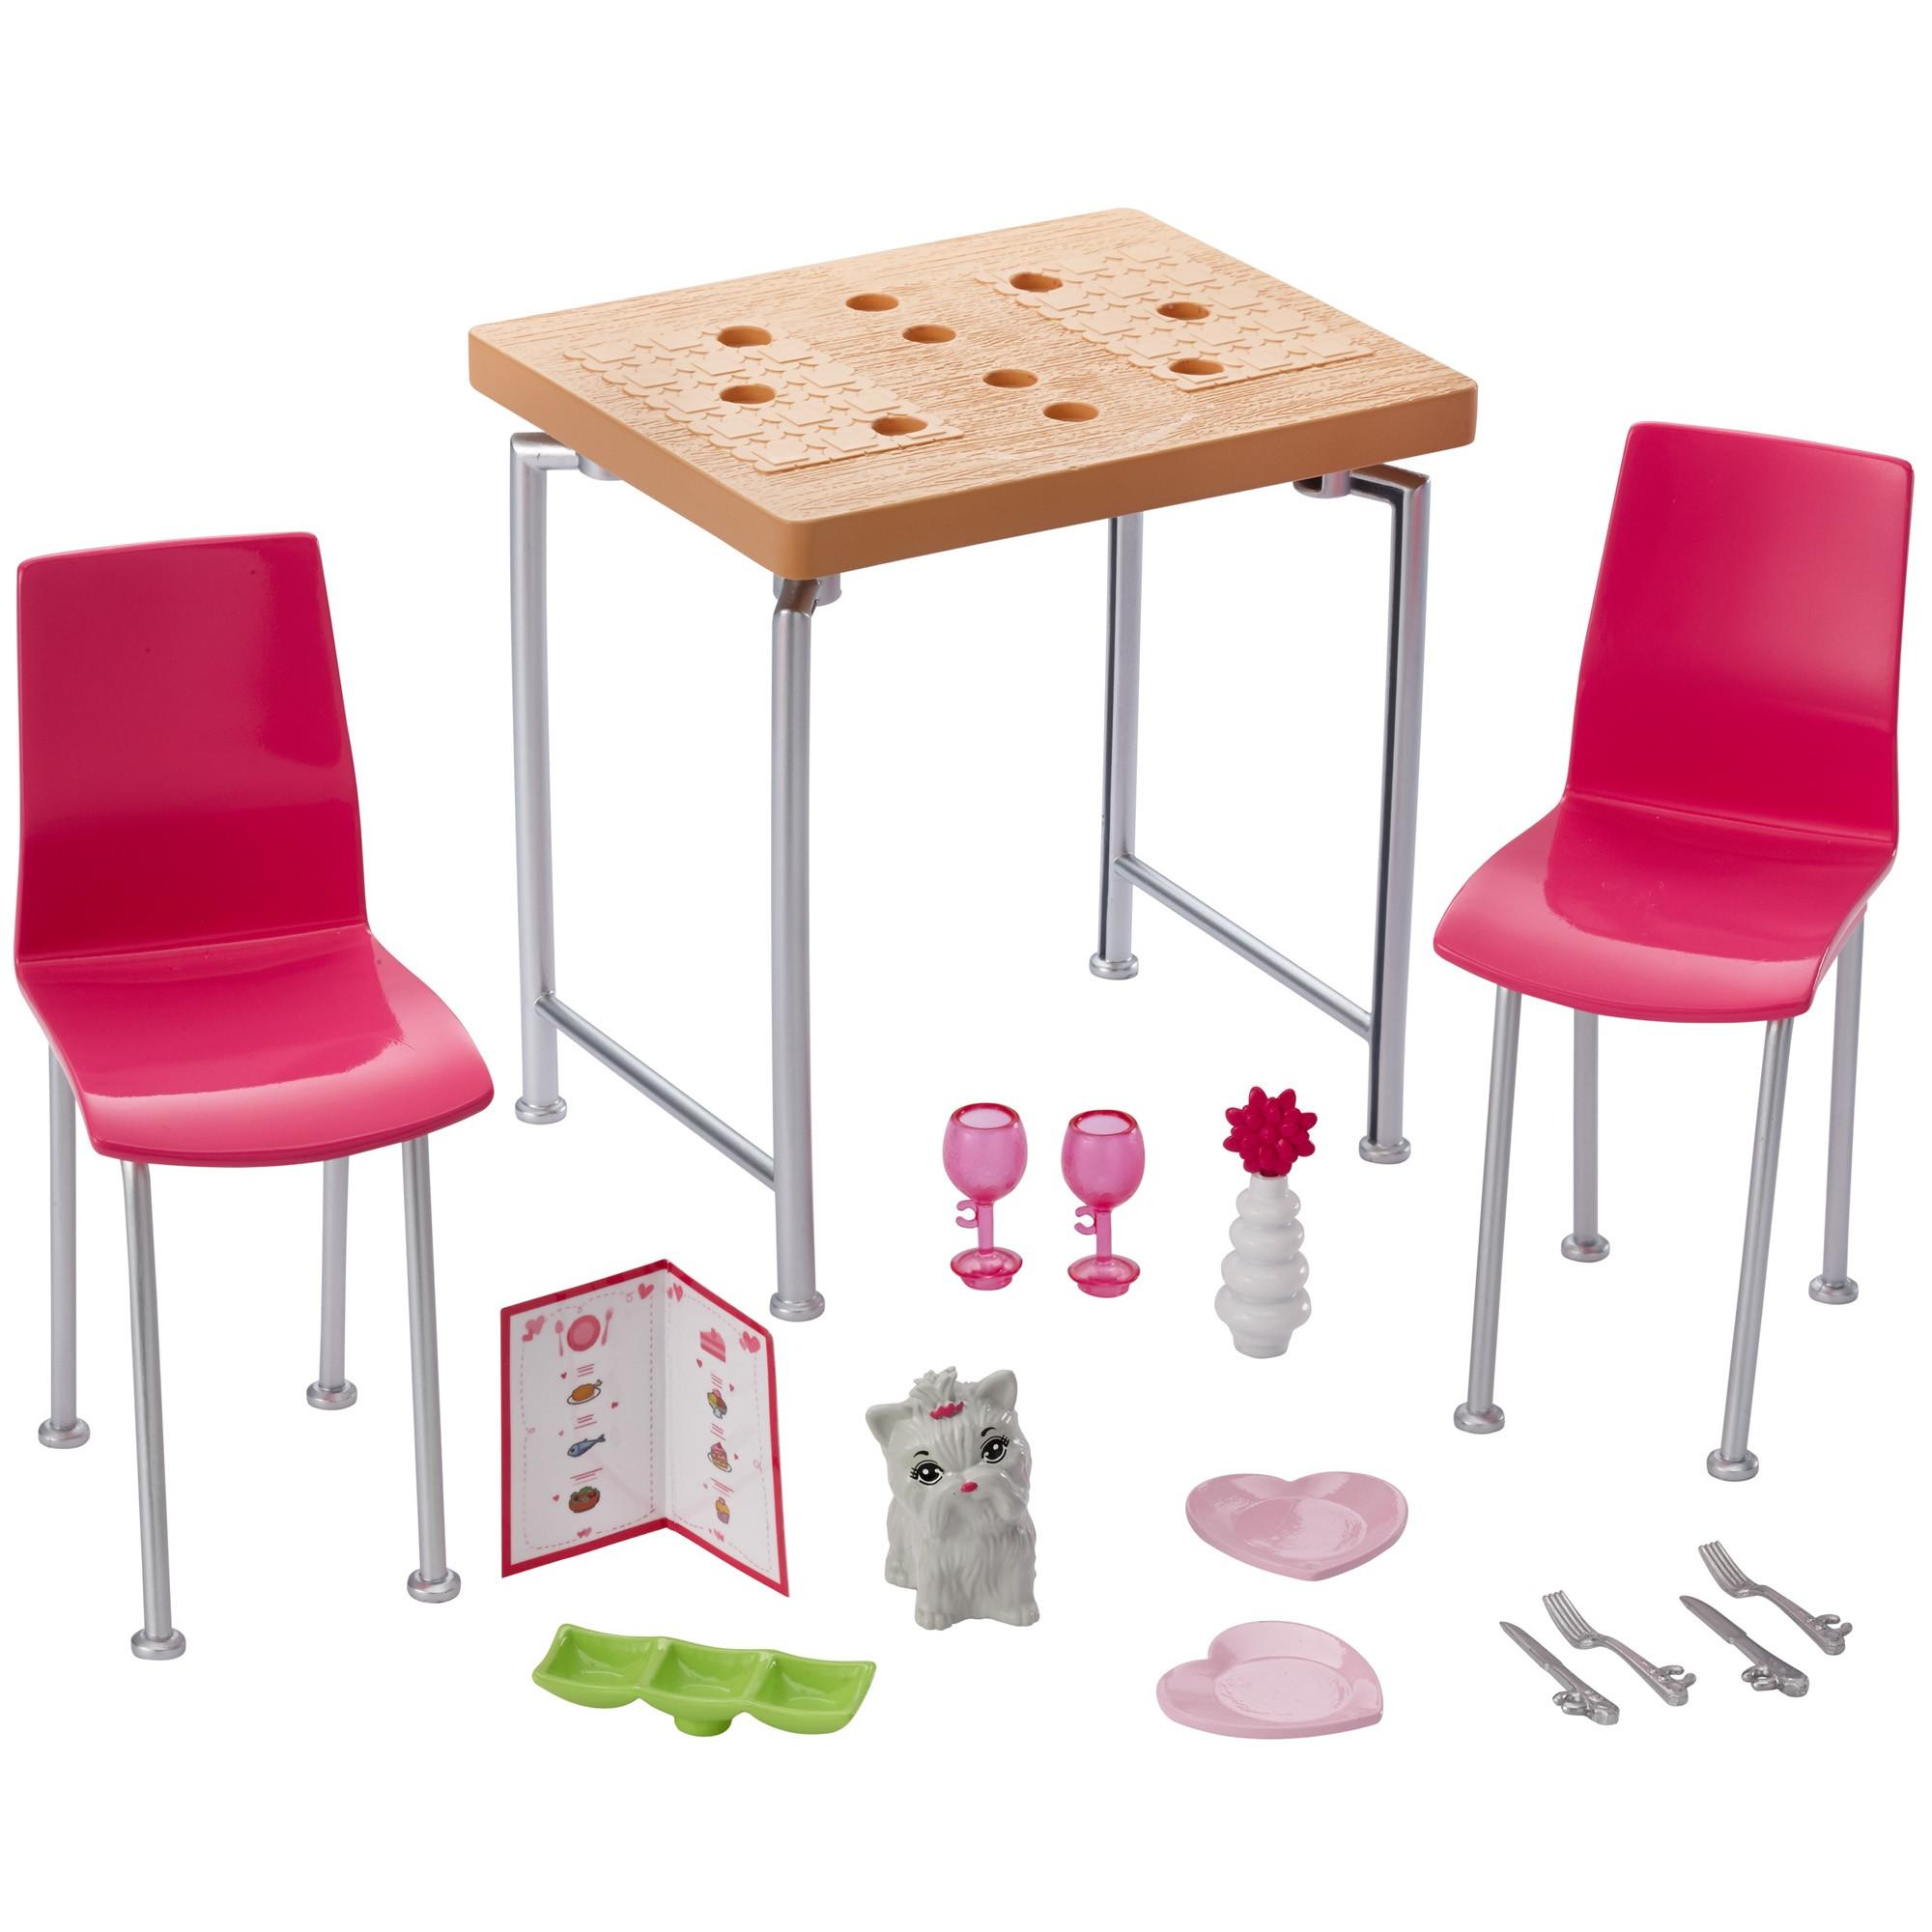 Barbie Date Night Accessory Set by Mattel